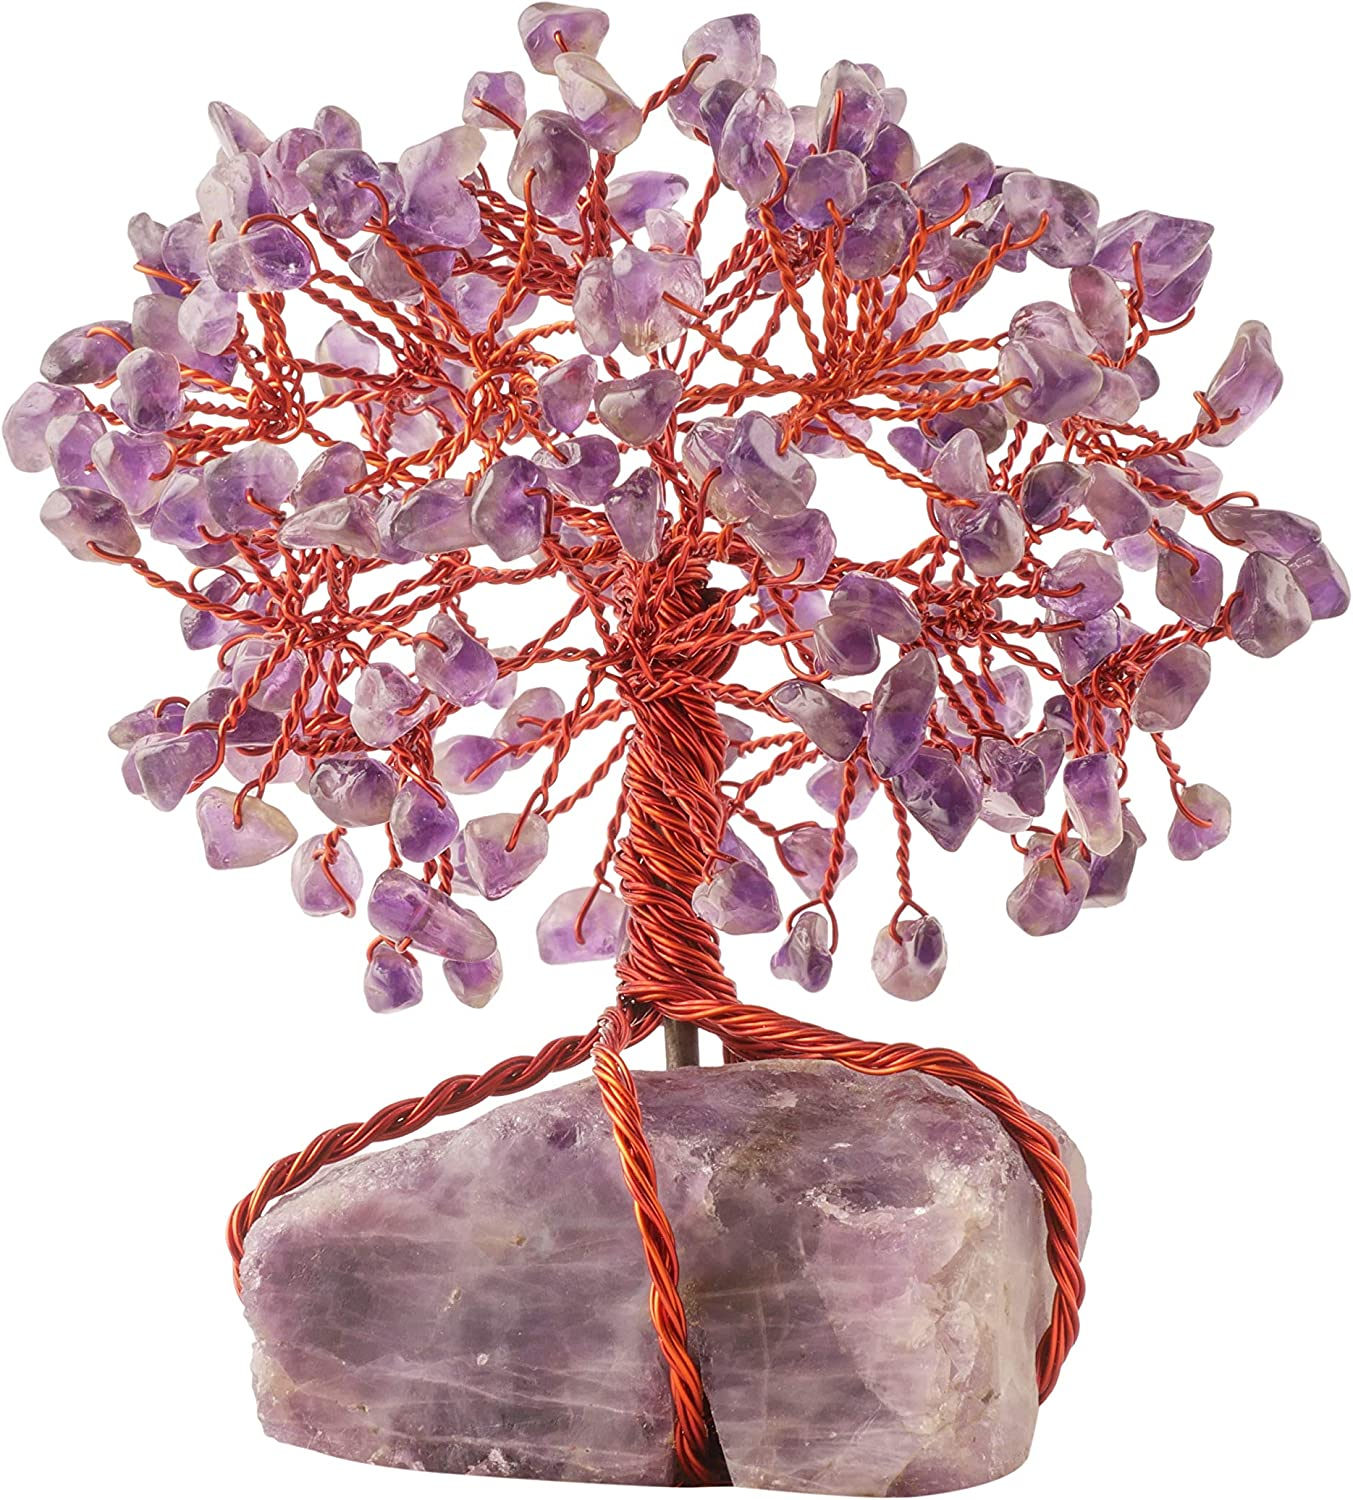 PYOR Amethyst Gems Tree of Life Feng Shui Crystals Stones Spiritual Gift Buddhah Statute Positive Energy Gifts Good Luck Items Decoration Office Trees Home Décor Rough Copper Wire Wrapped